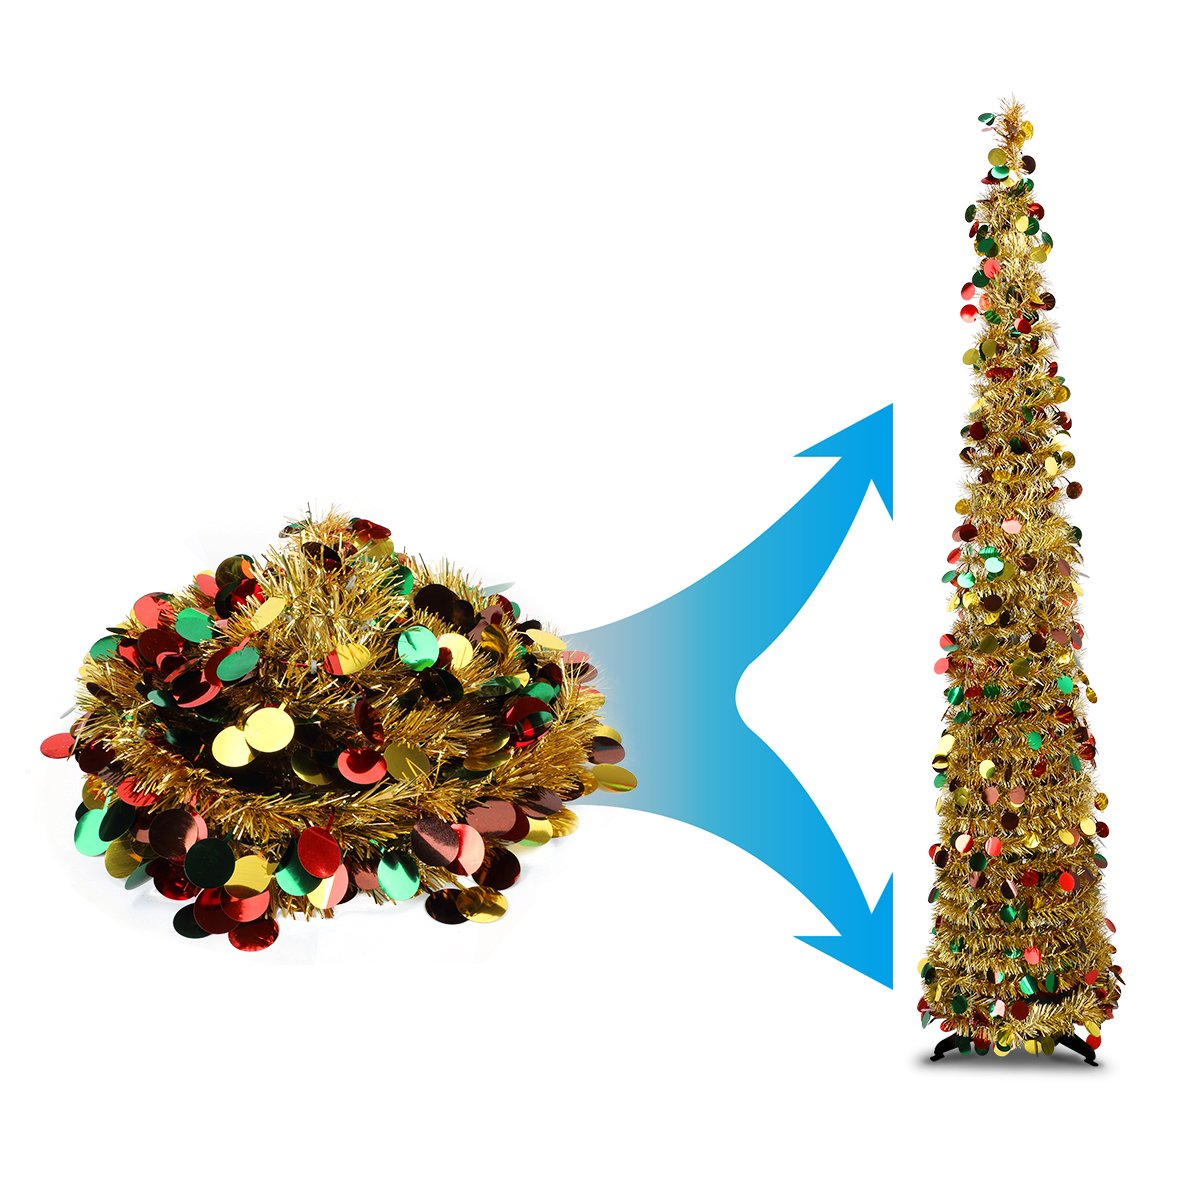 3SPRINGS Gold Multicolored Four-Season Shiny Tinsel Christmas Tree (Joy-Leo), LED String Christmas Lights Mate Tree, Decorative Artificial Tree for Home & Party & Wedding, Collapsible & Reusable